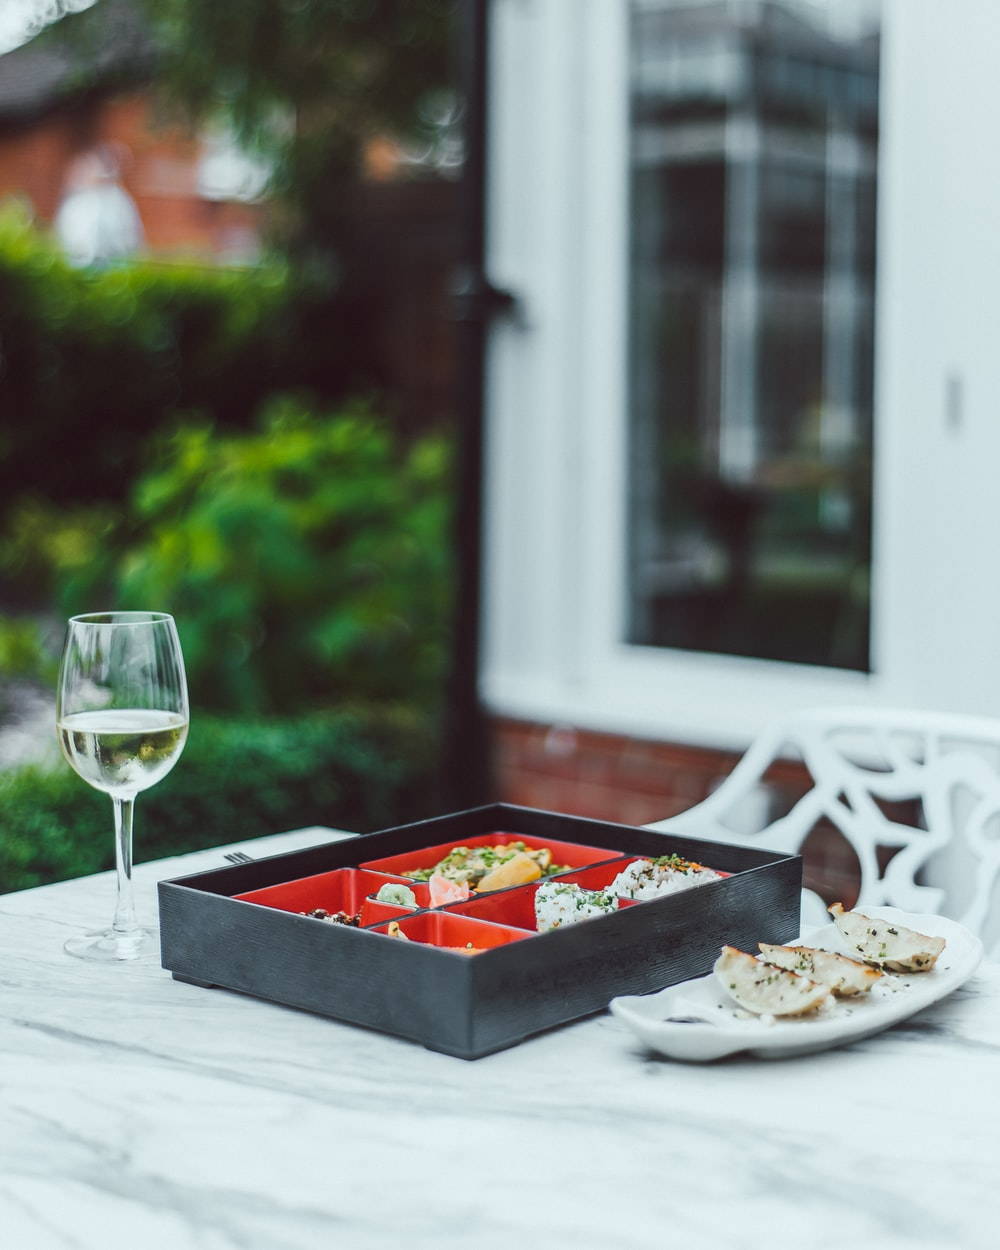 black and red bento box on white table beside of goblet glass